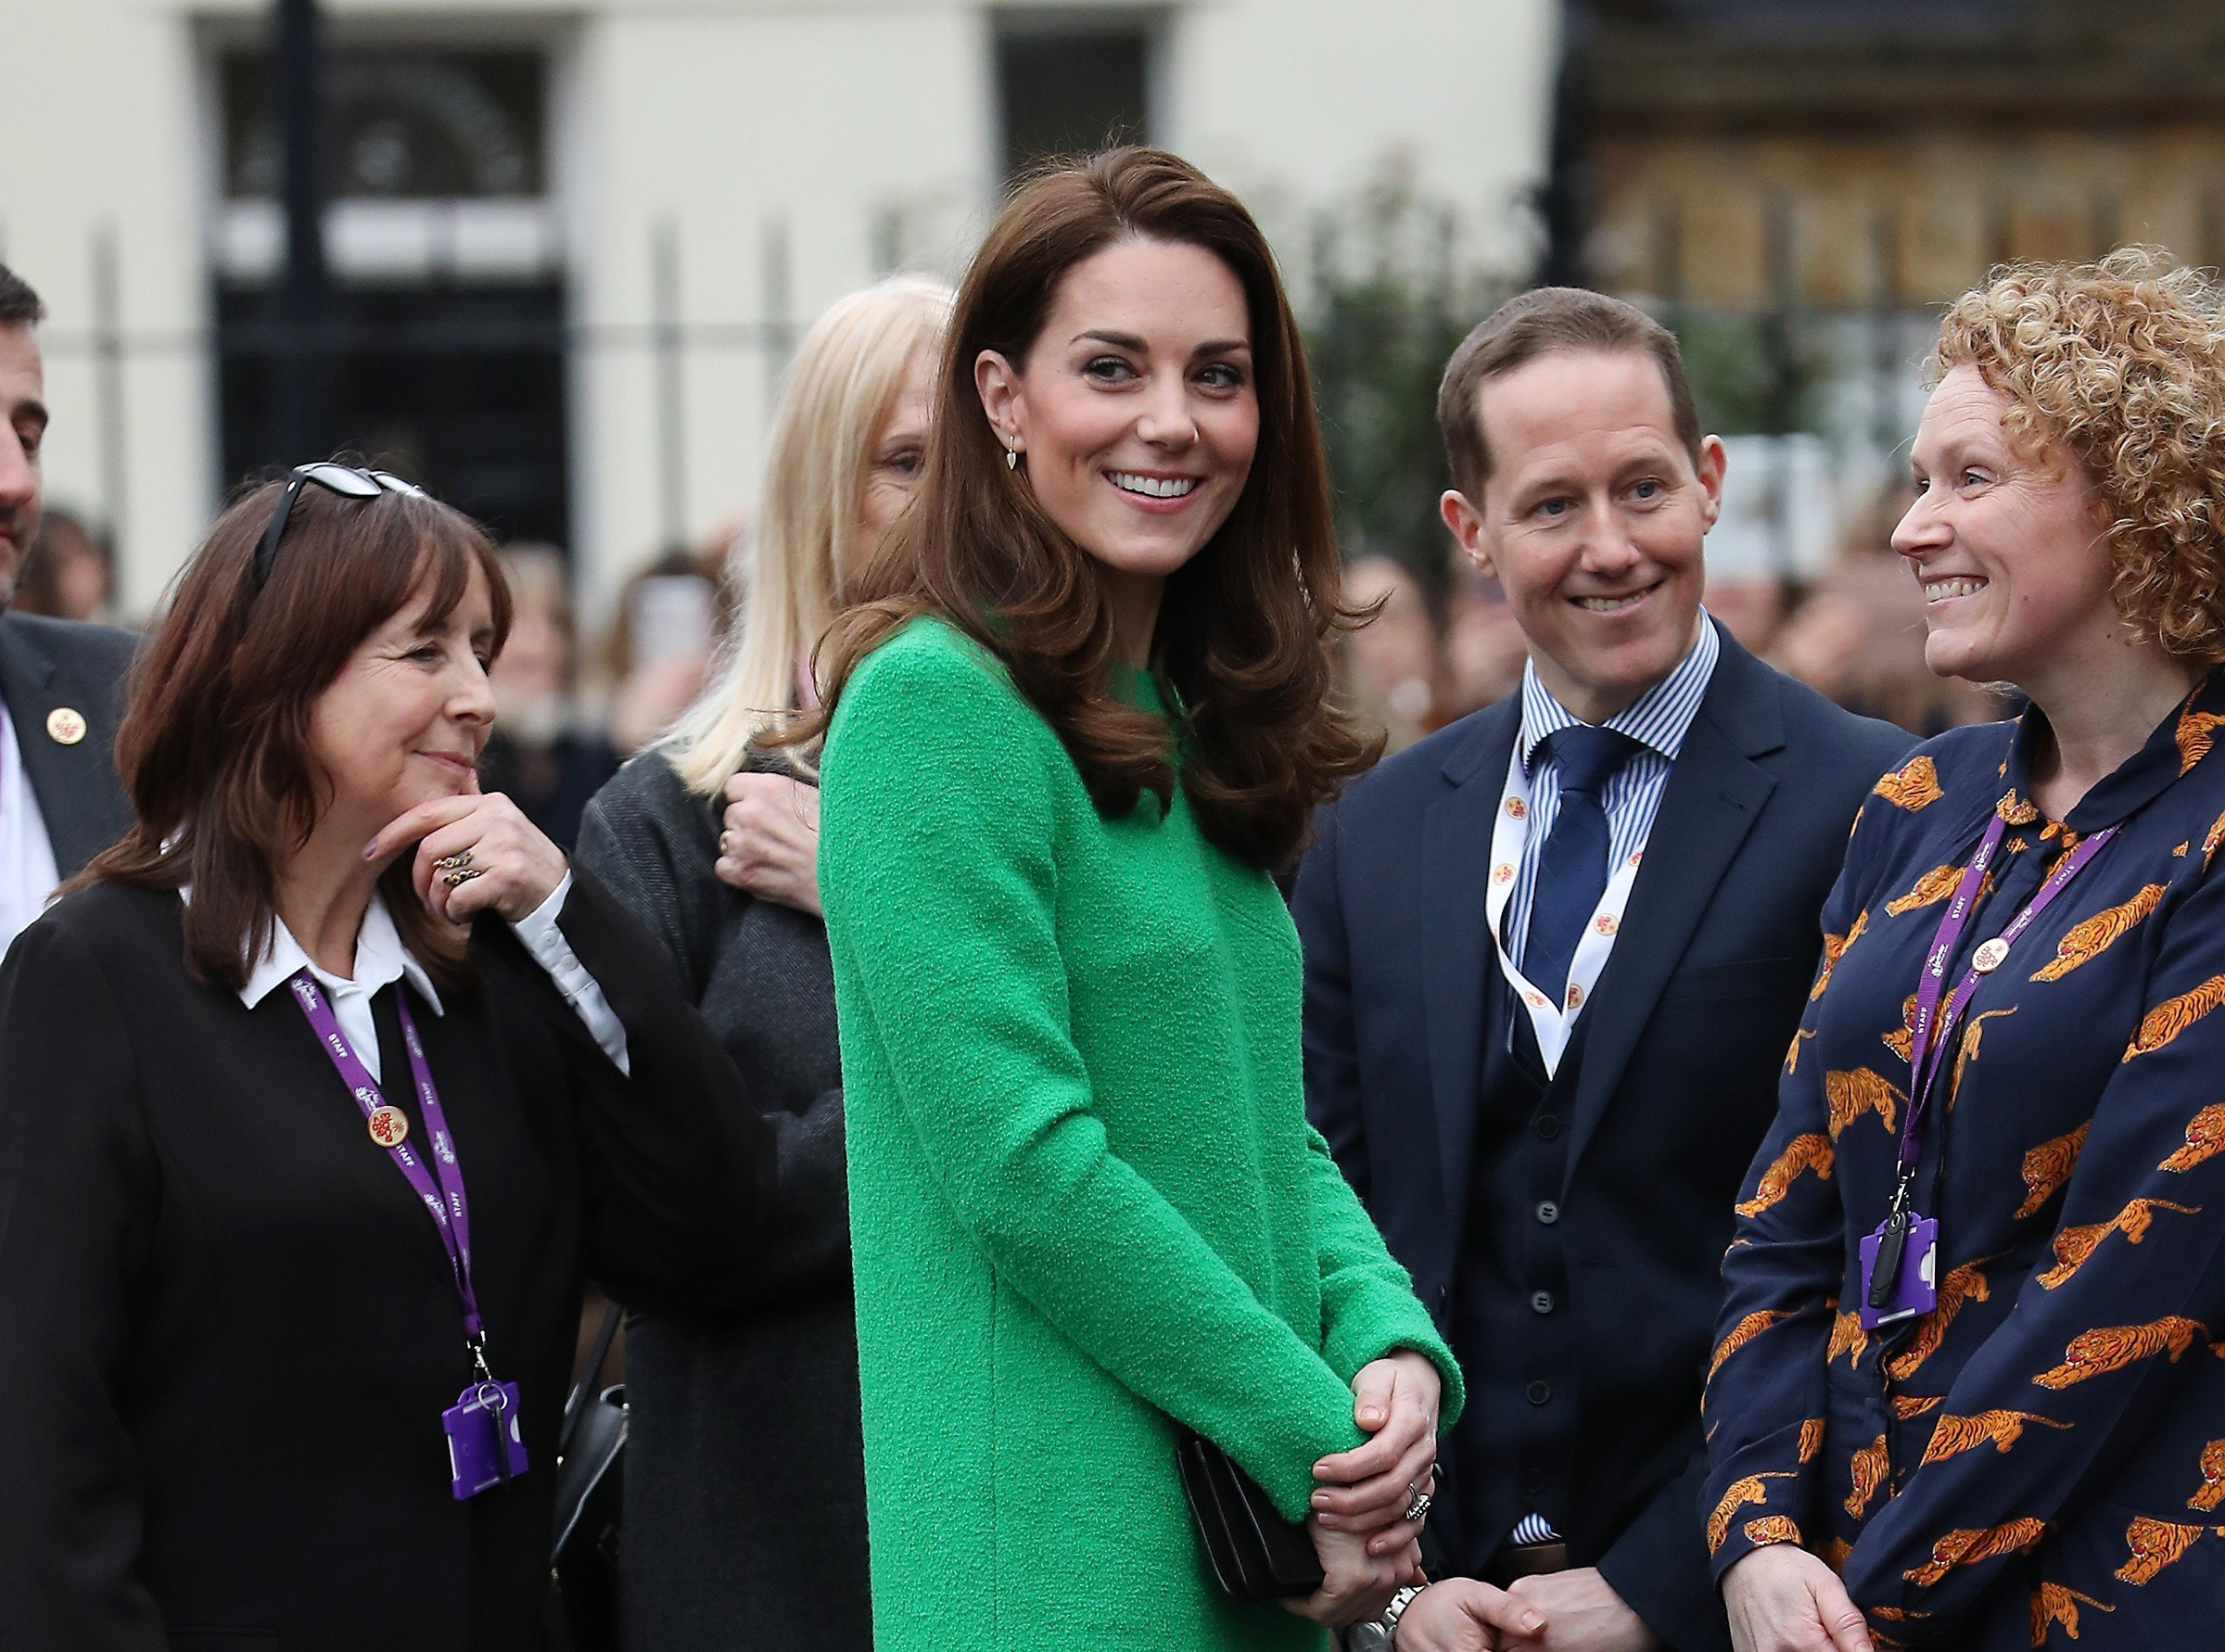 The Duchess of Cambridge visits schools in support of children's mental health | Photo: Getty Images